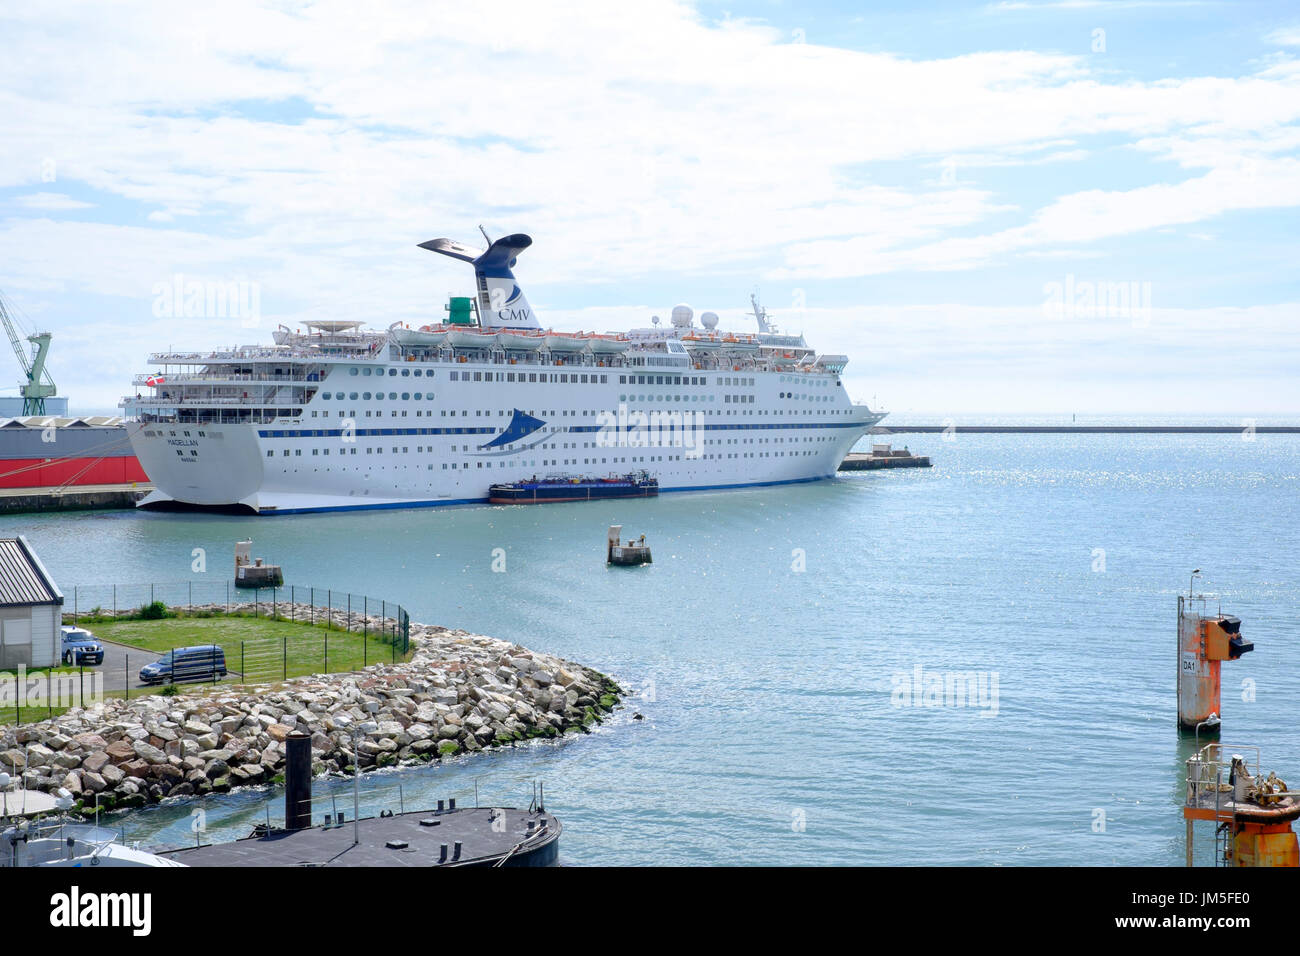 cruise ship cmv magellan docked at le havre france Stock Photo